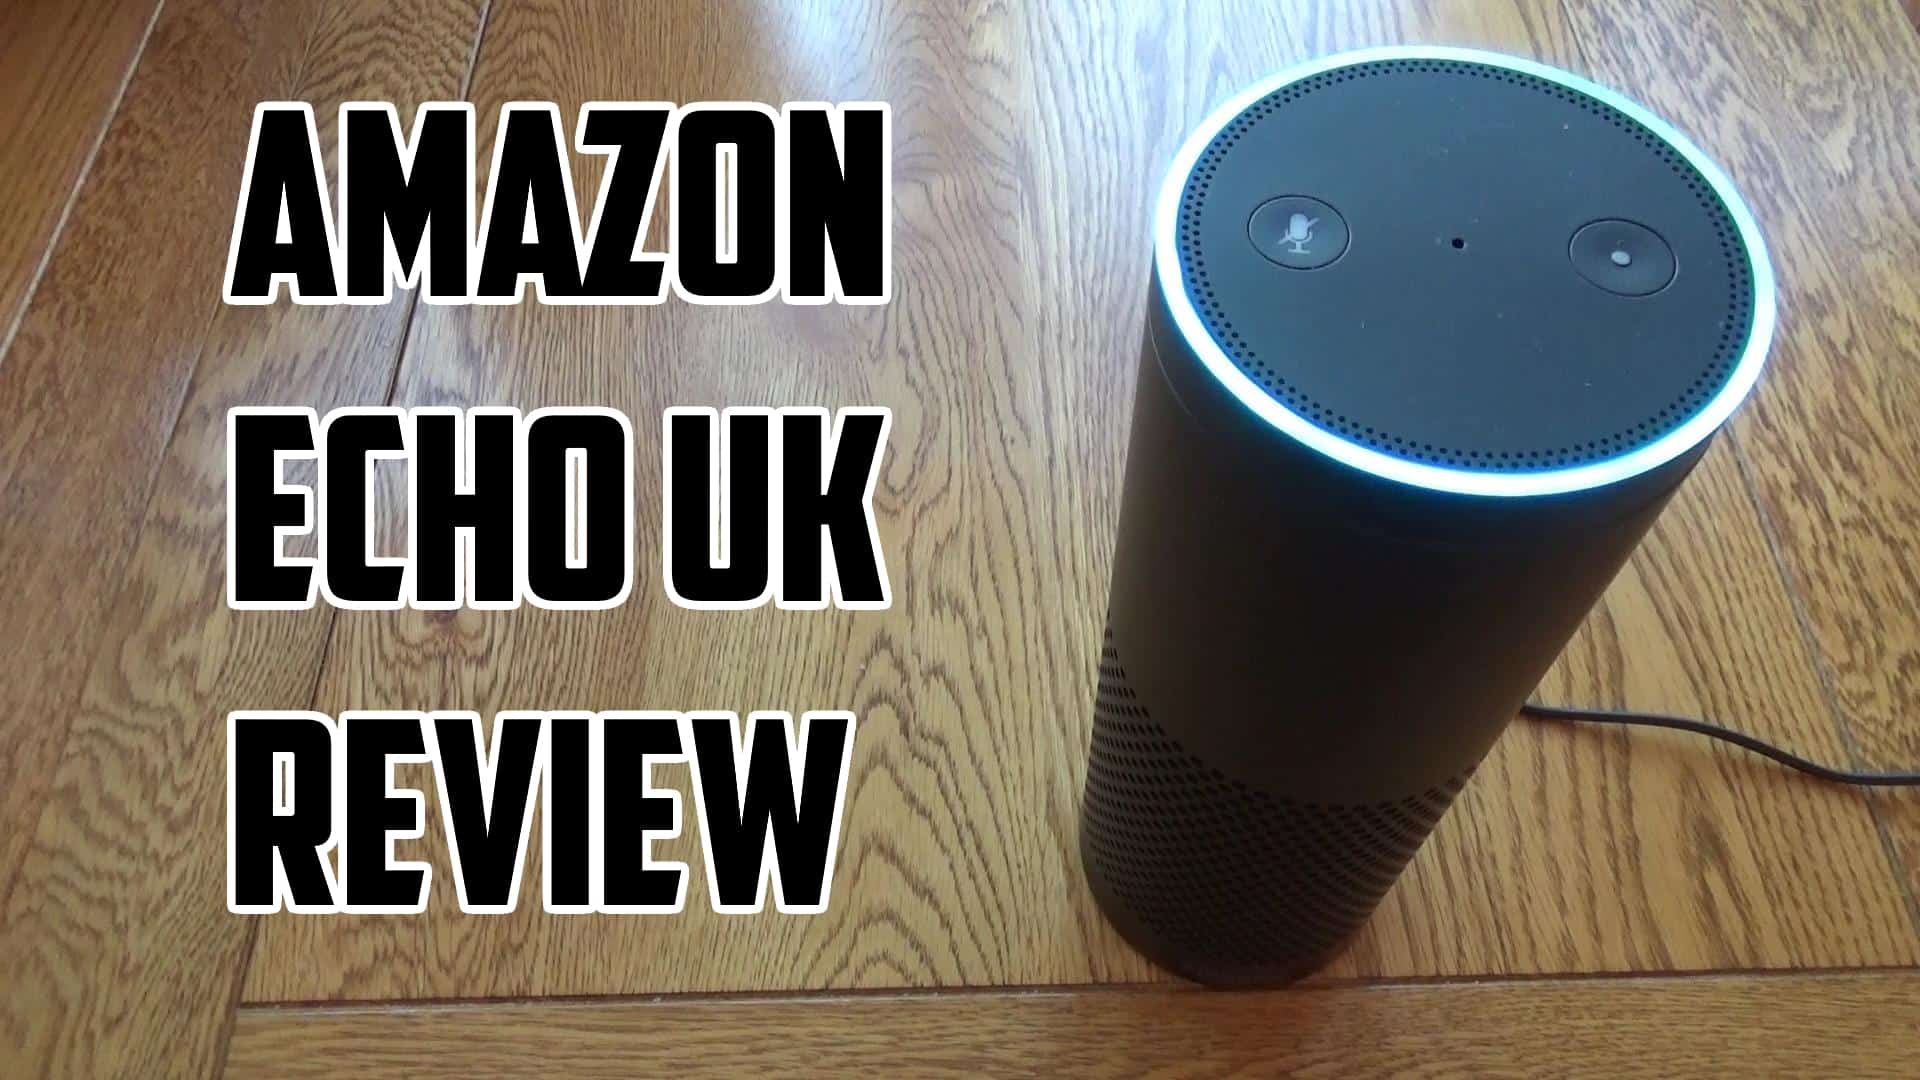 Amazon Echo UK and Alexa Review